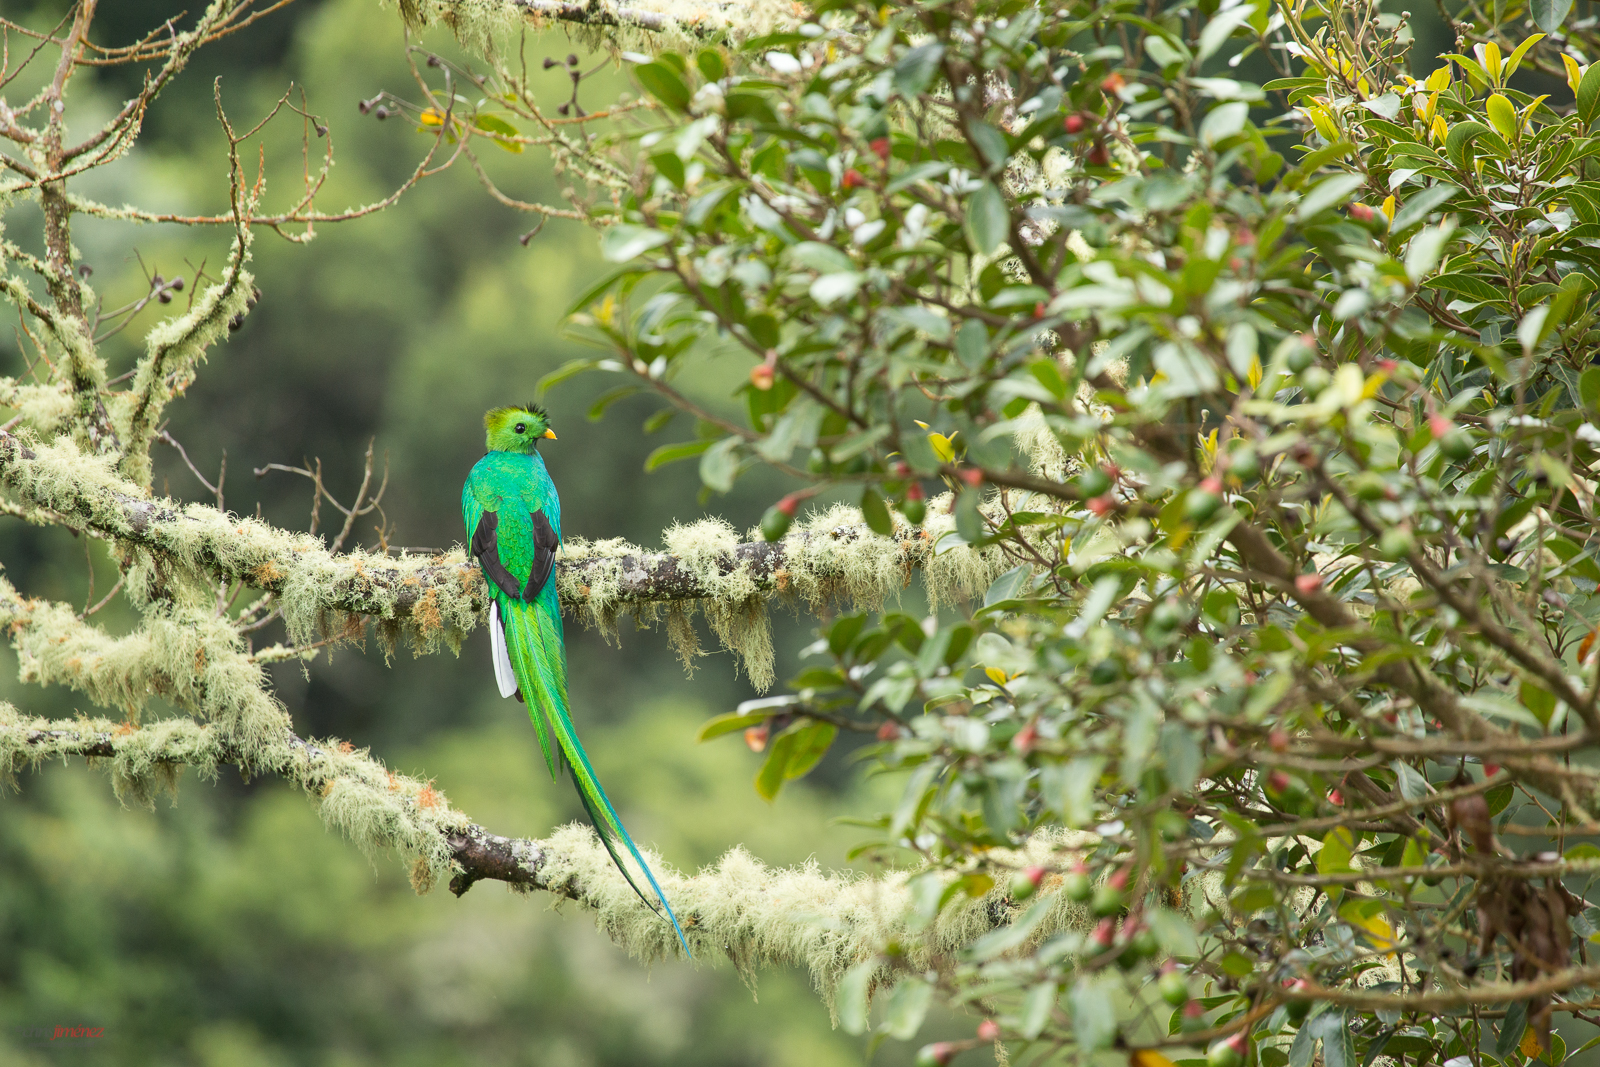 Resplendent Quetzal perched on a mossy branch